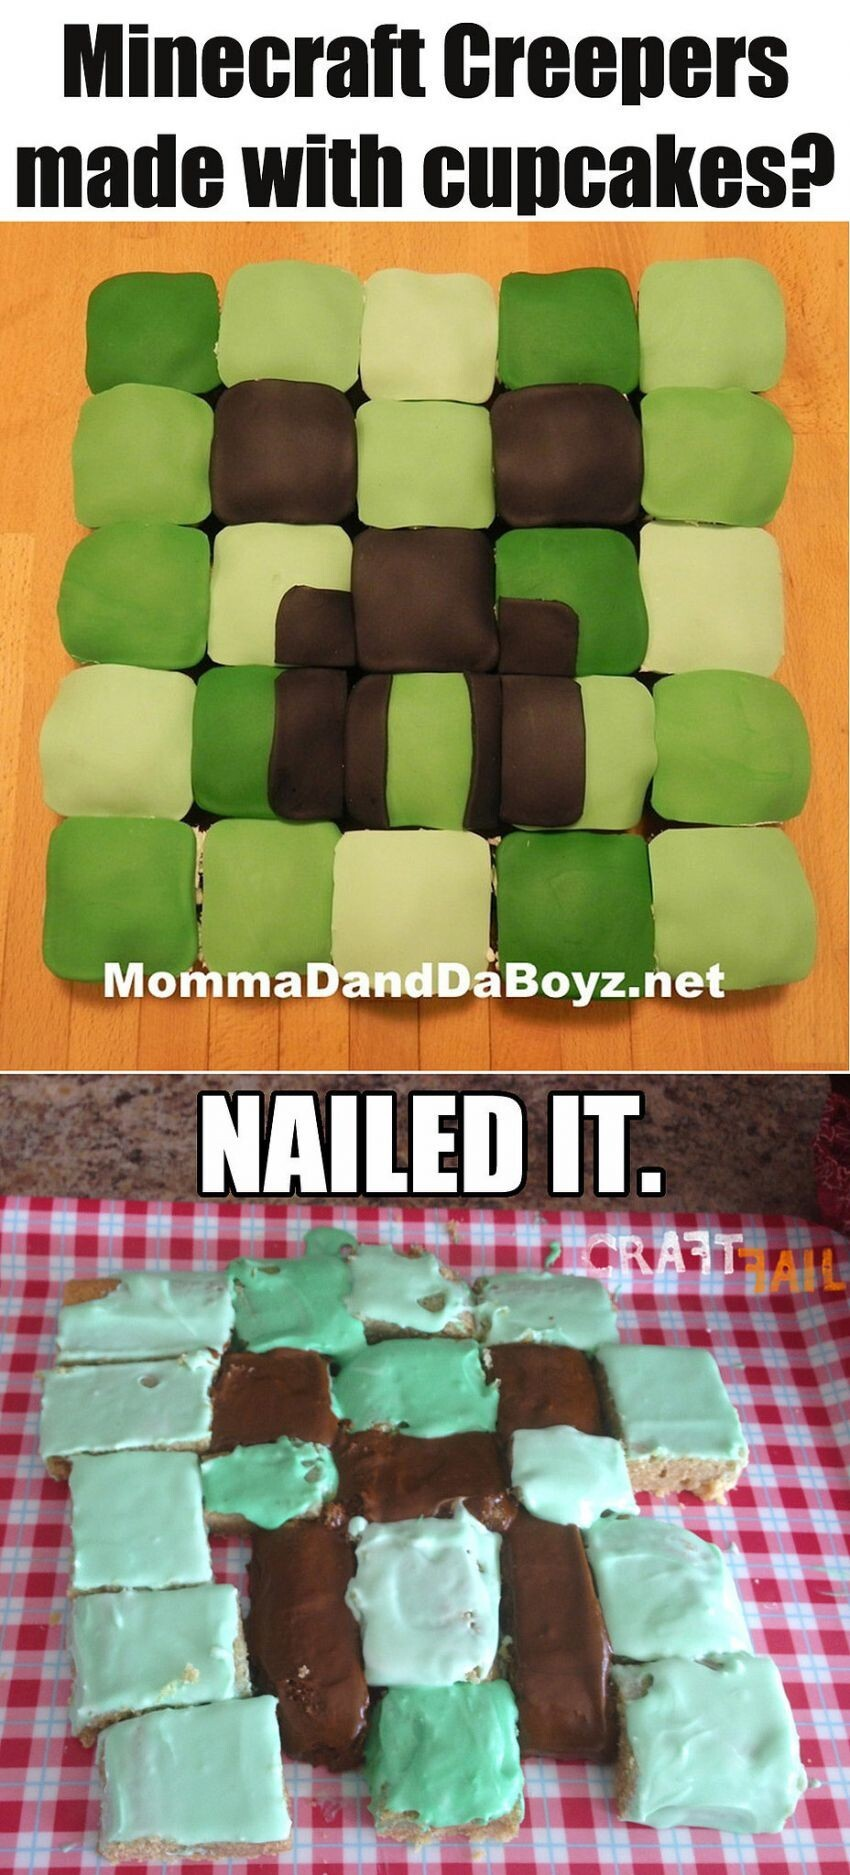 Who's Ready For More Pinterest Fails?